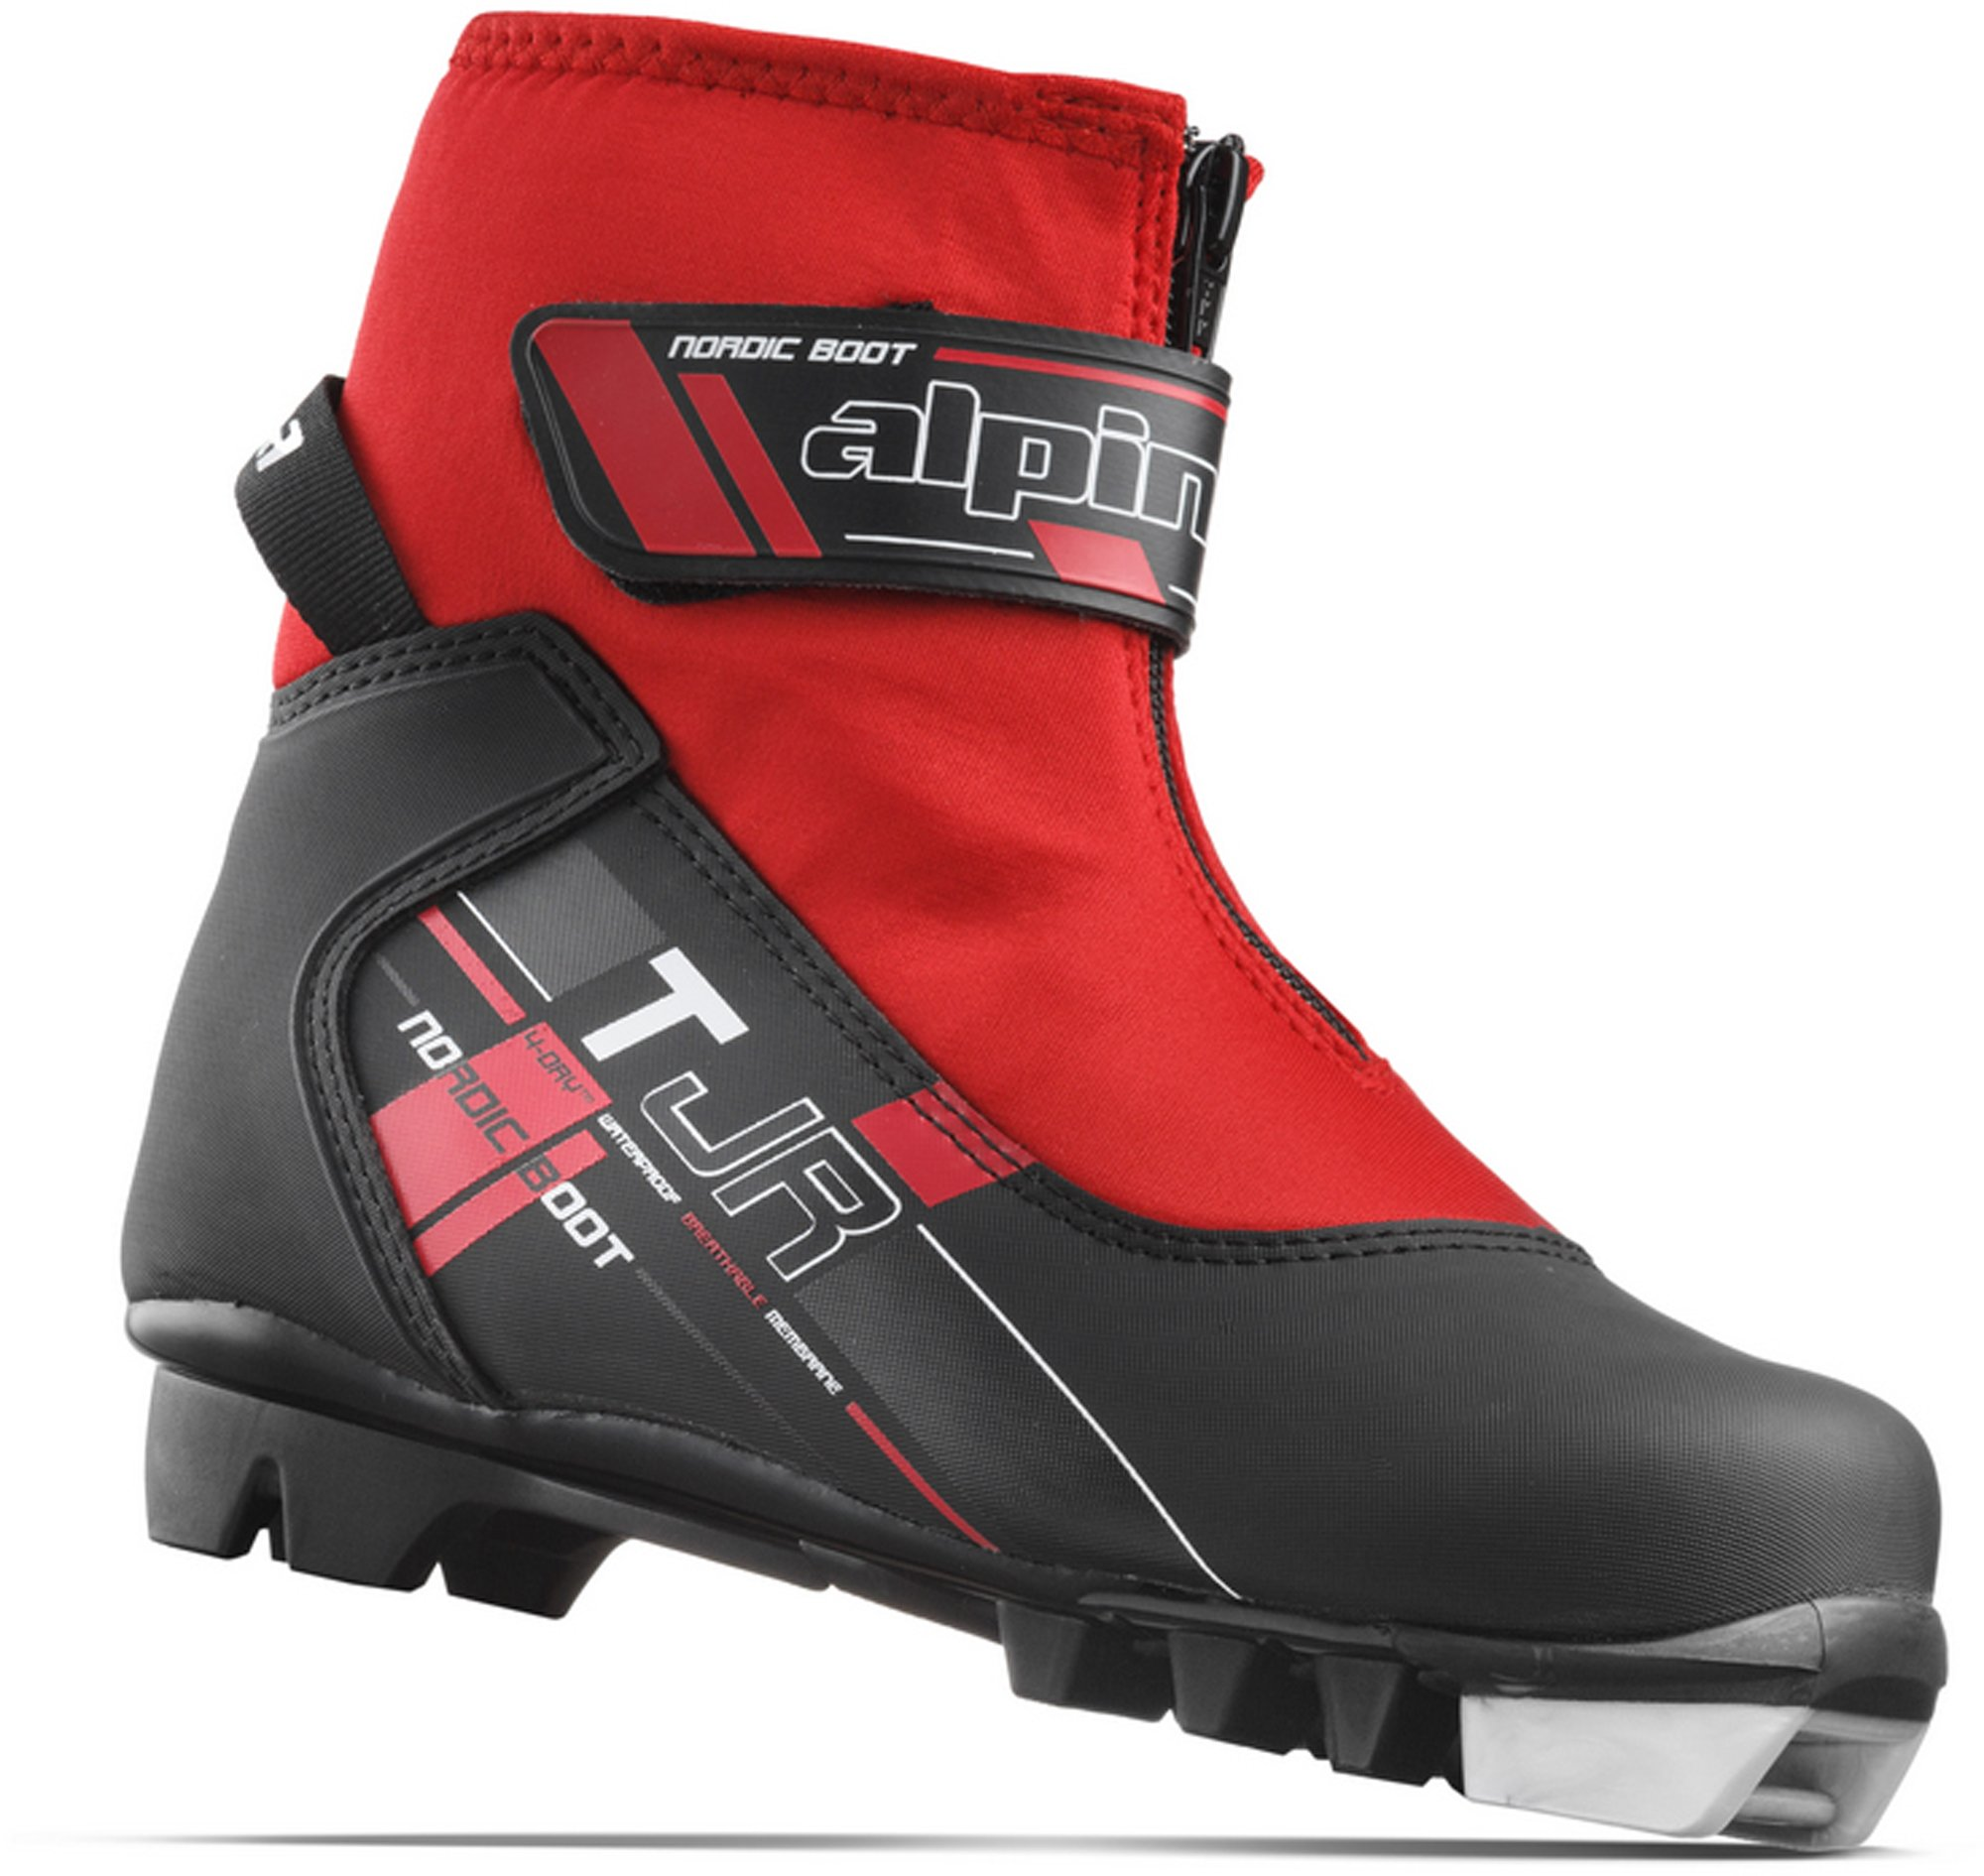 Alpina Sports Youth TJ Touring Ski Boots with Strap & Zippered Lace Cover, Black/Red, Euro 37